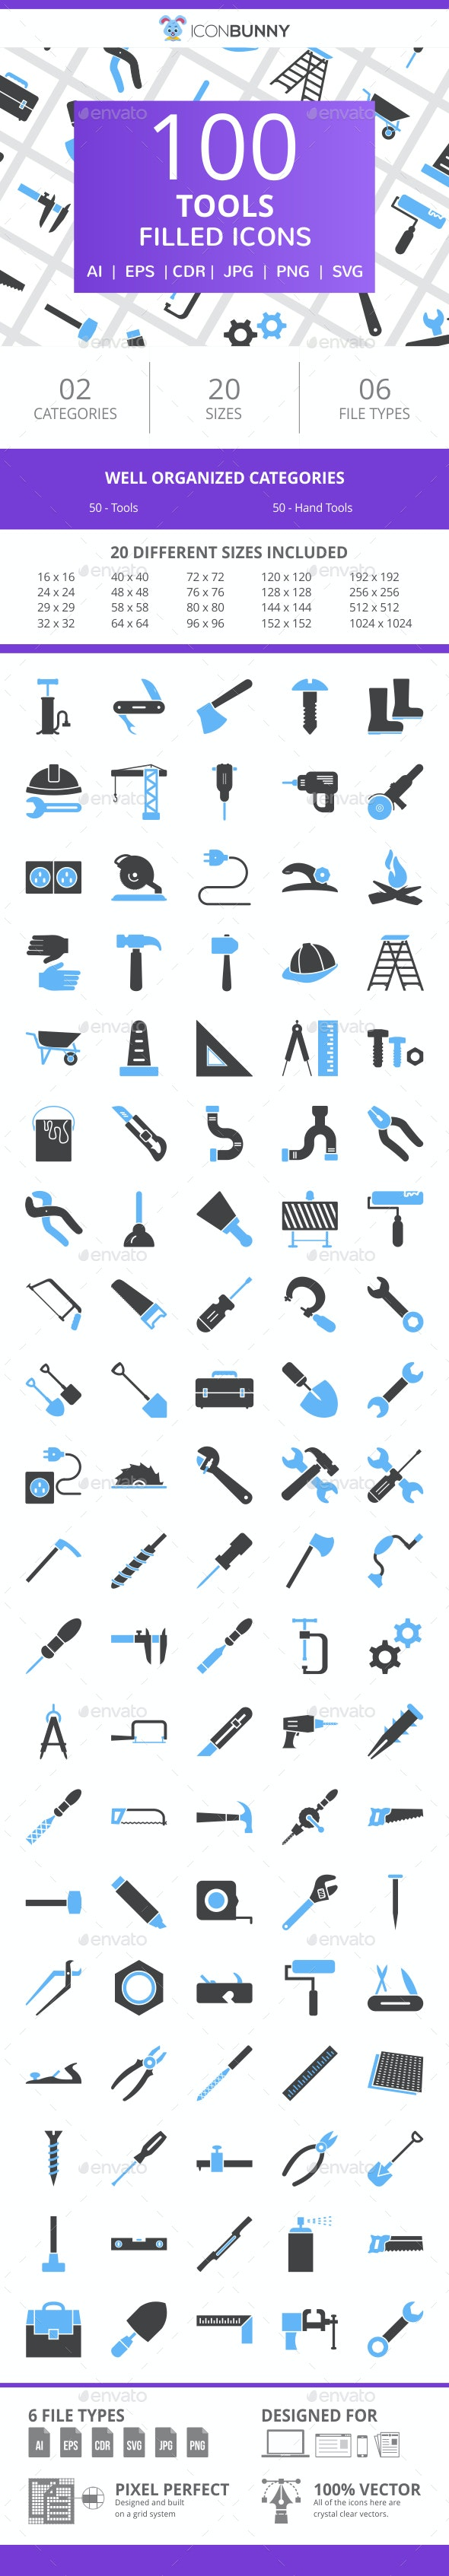 100 Tools Filled Blue & Black Icons - Icons